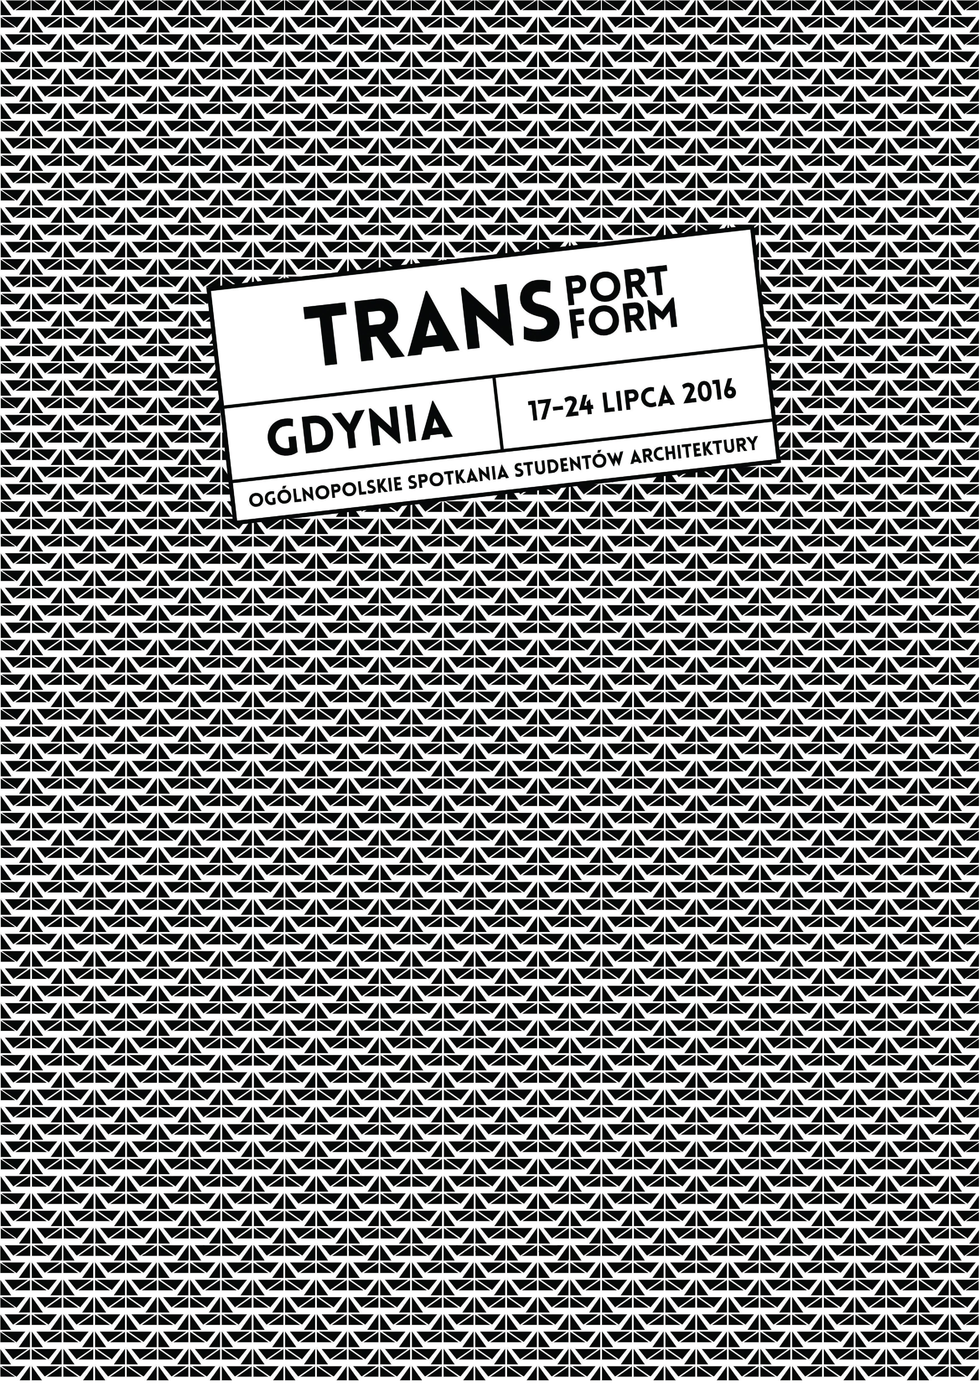 TransPORT/TransFORM